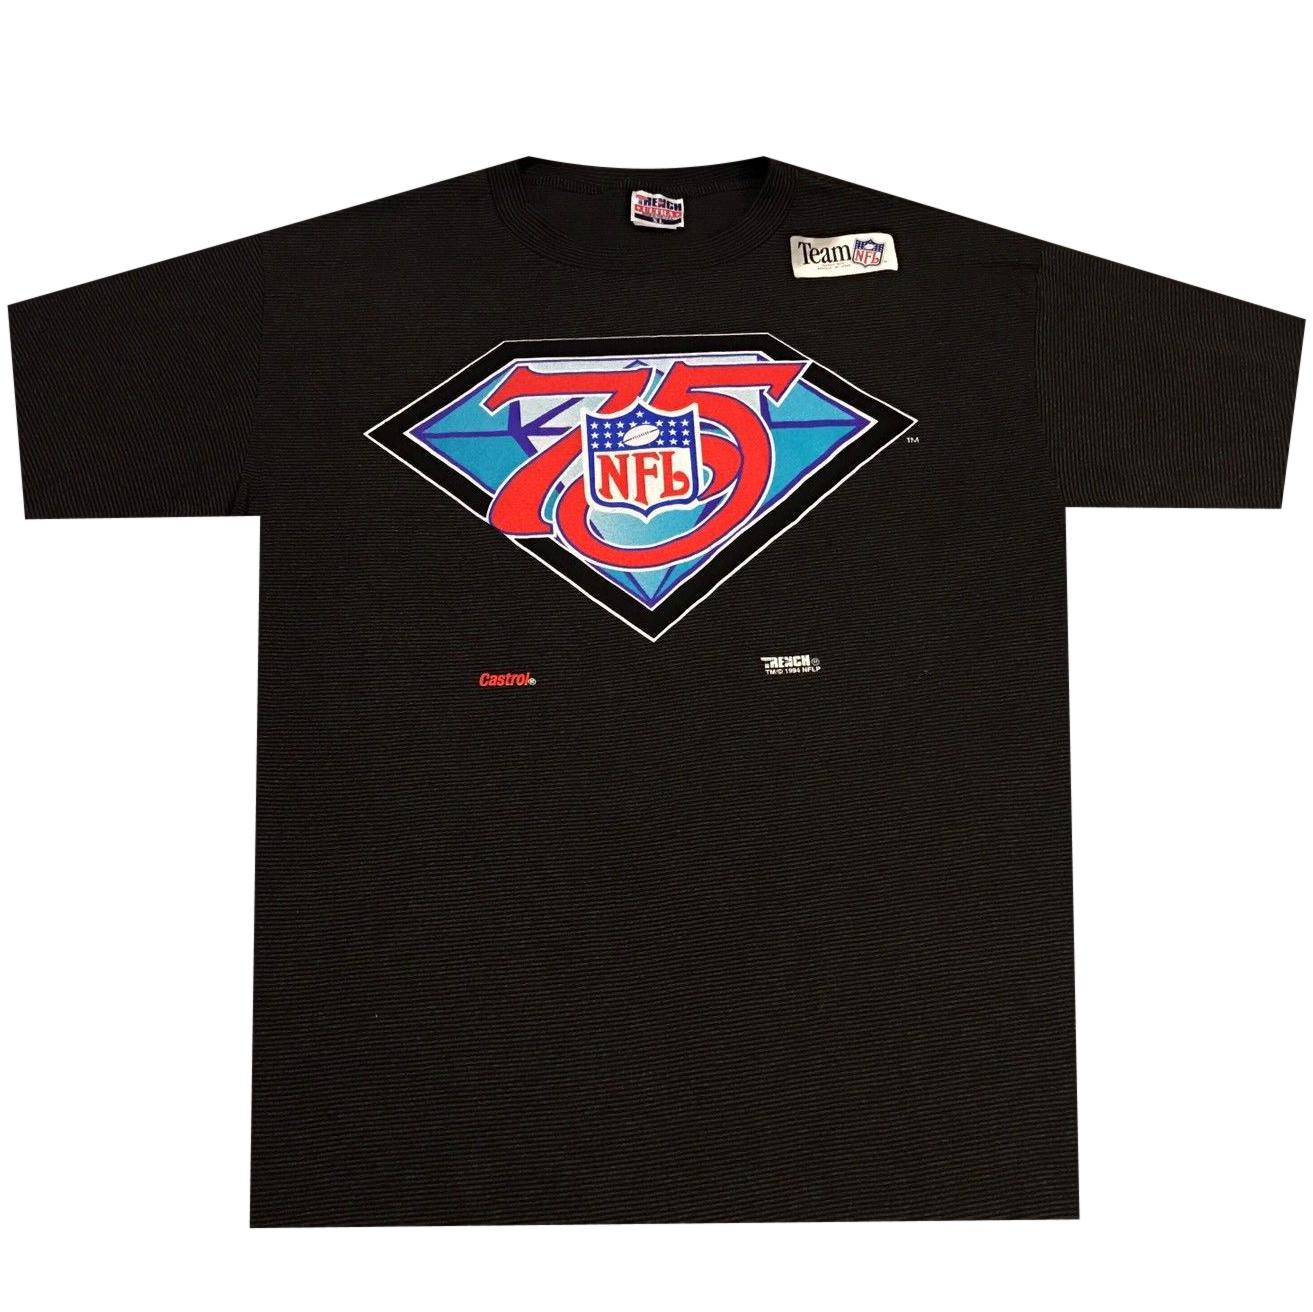 Vintage NFL 75th Anniversary Shirt